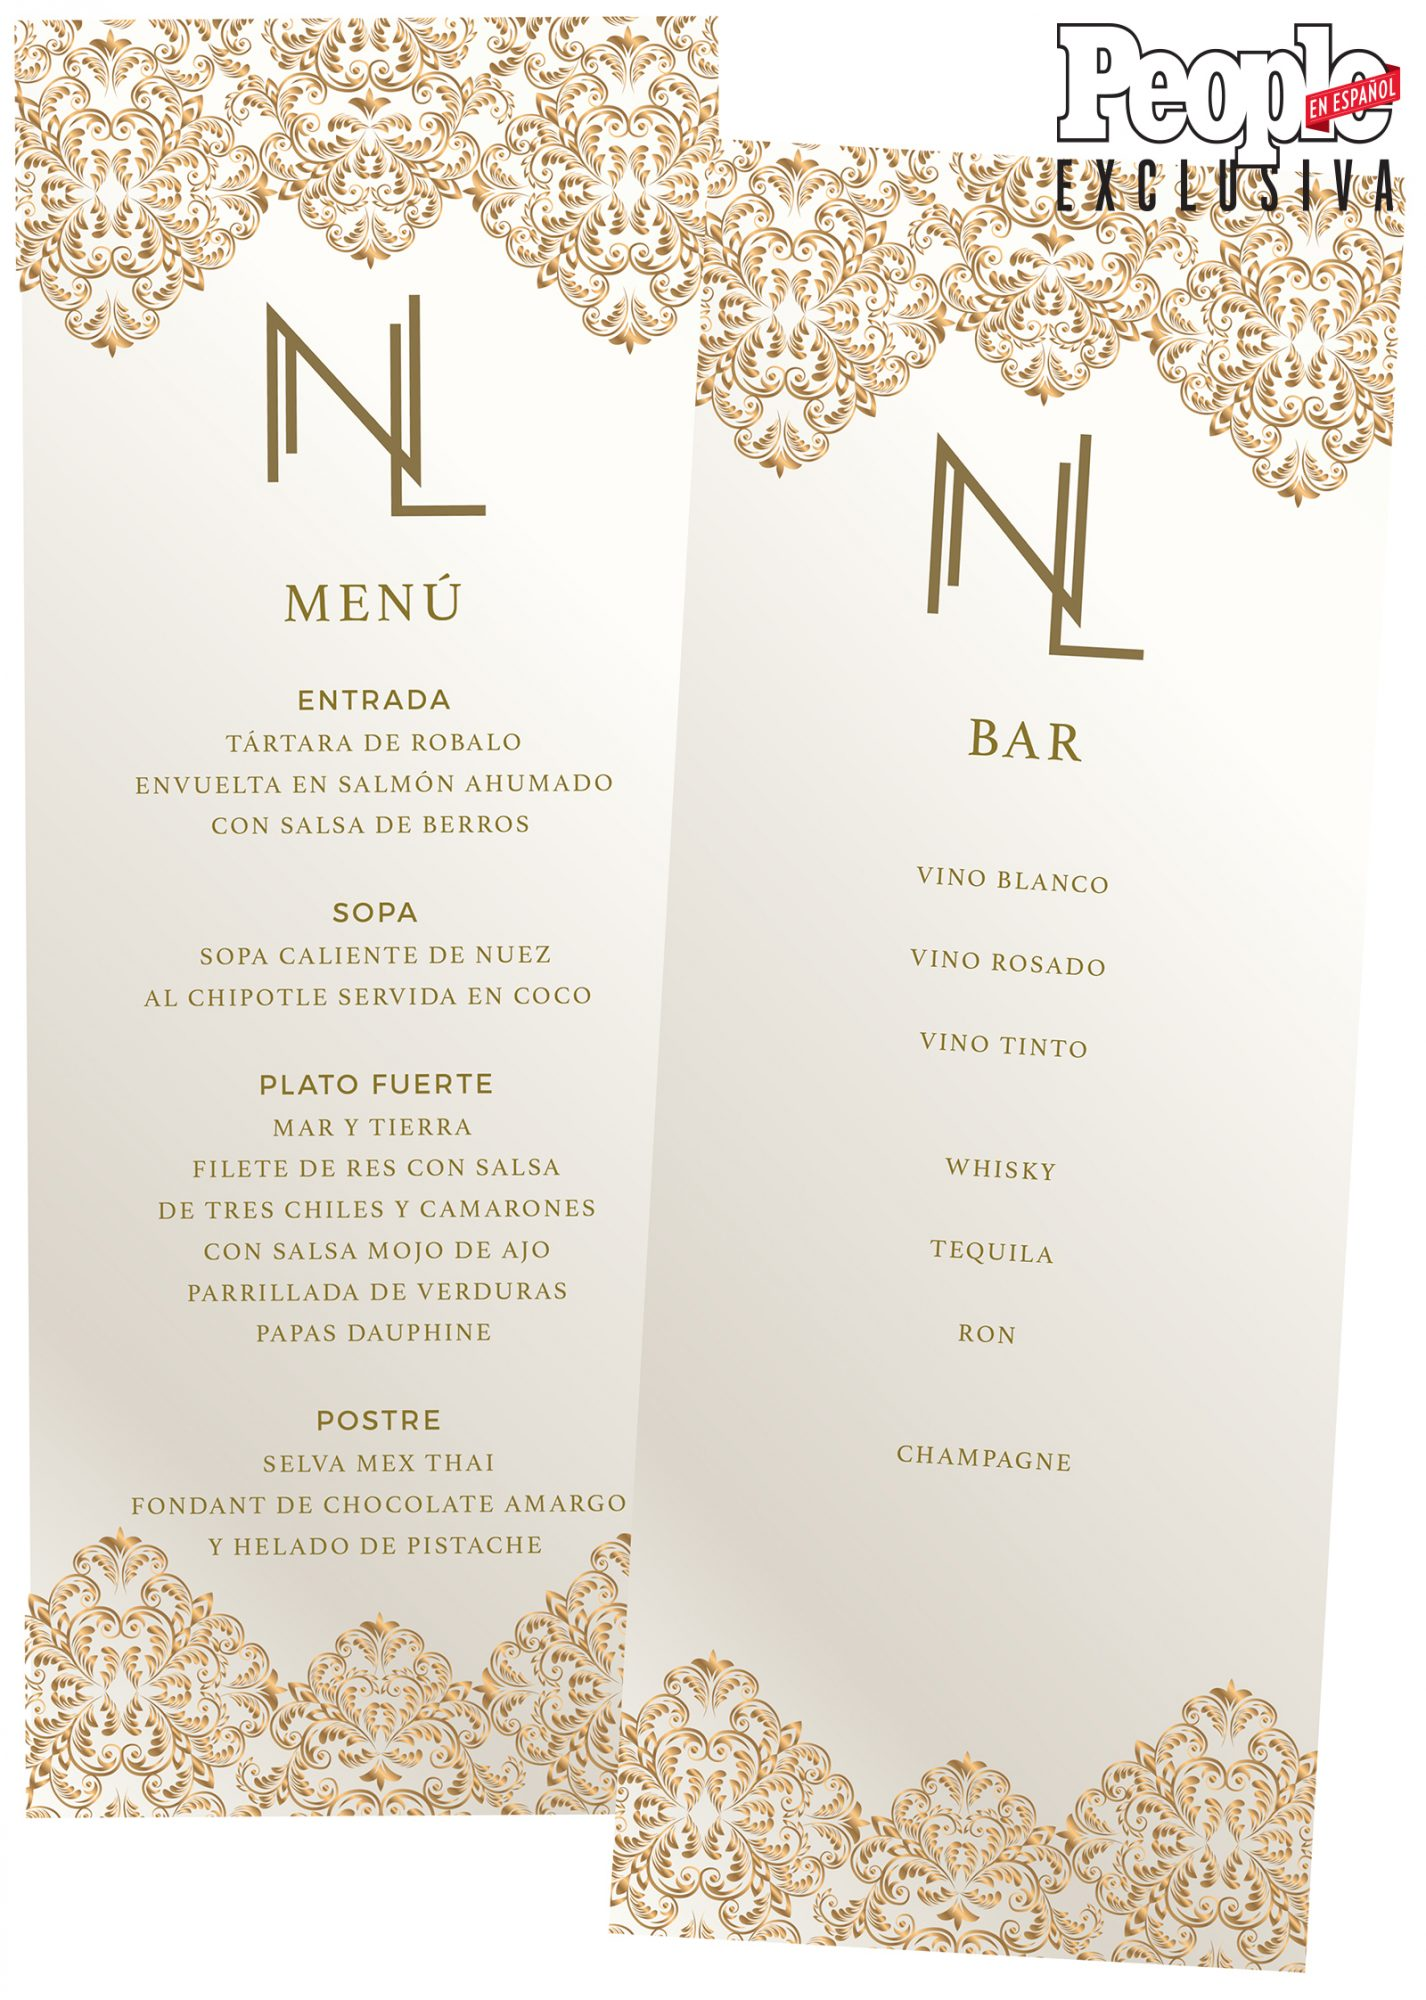 Menu - Boda Ninel Conde y Larry Ramos - DO NOT REUSE